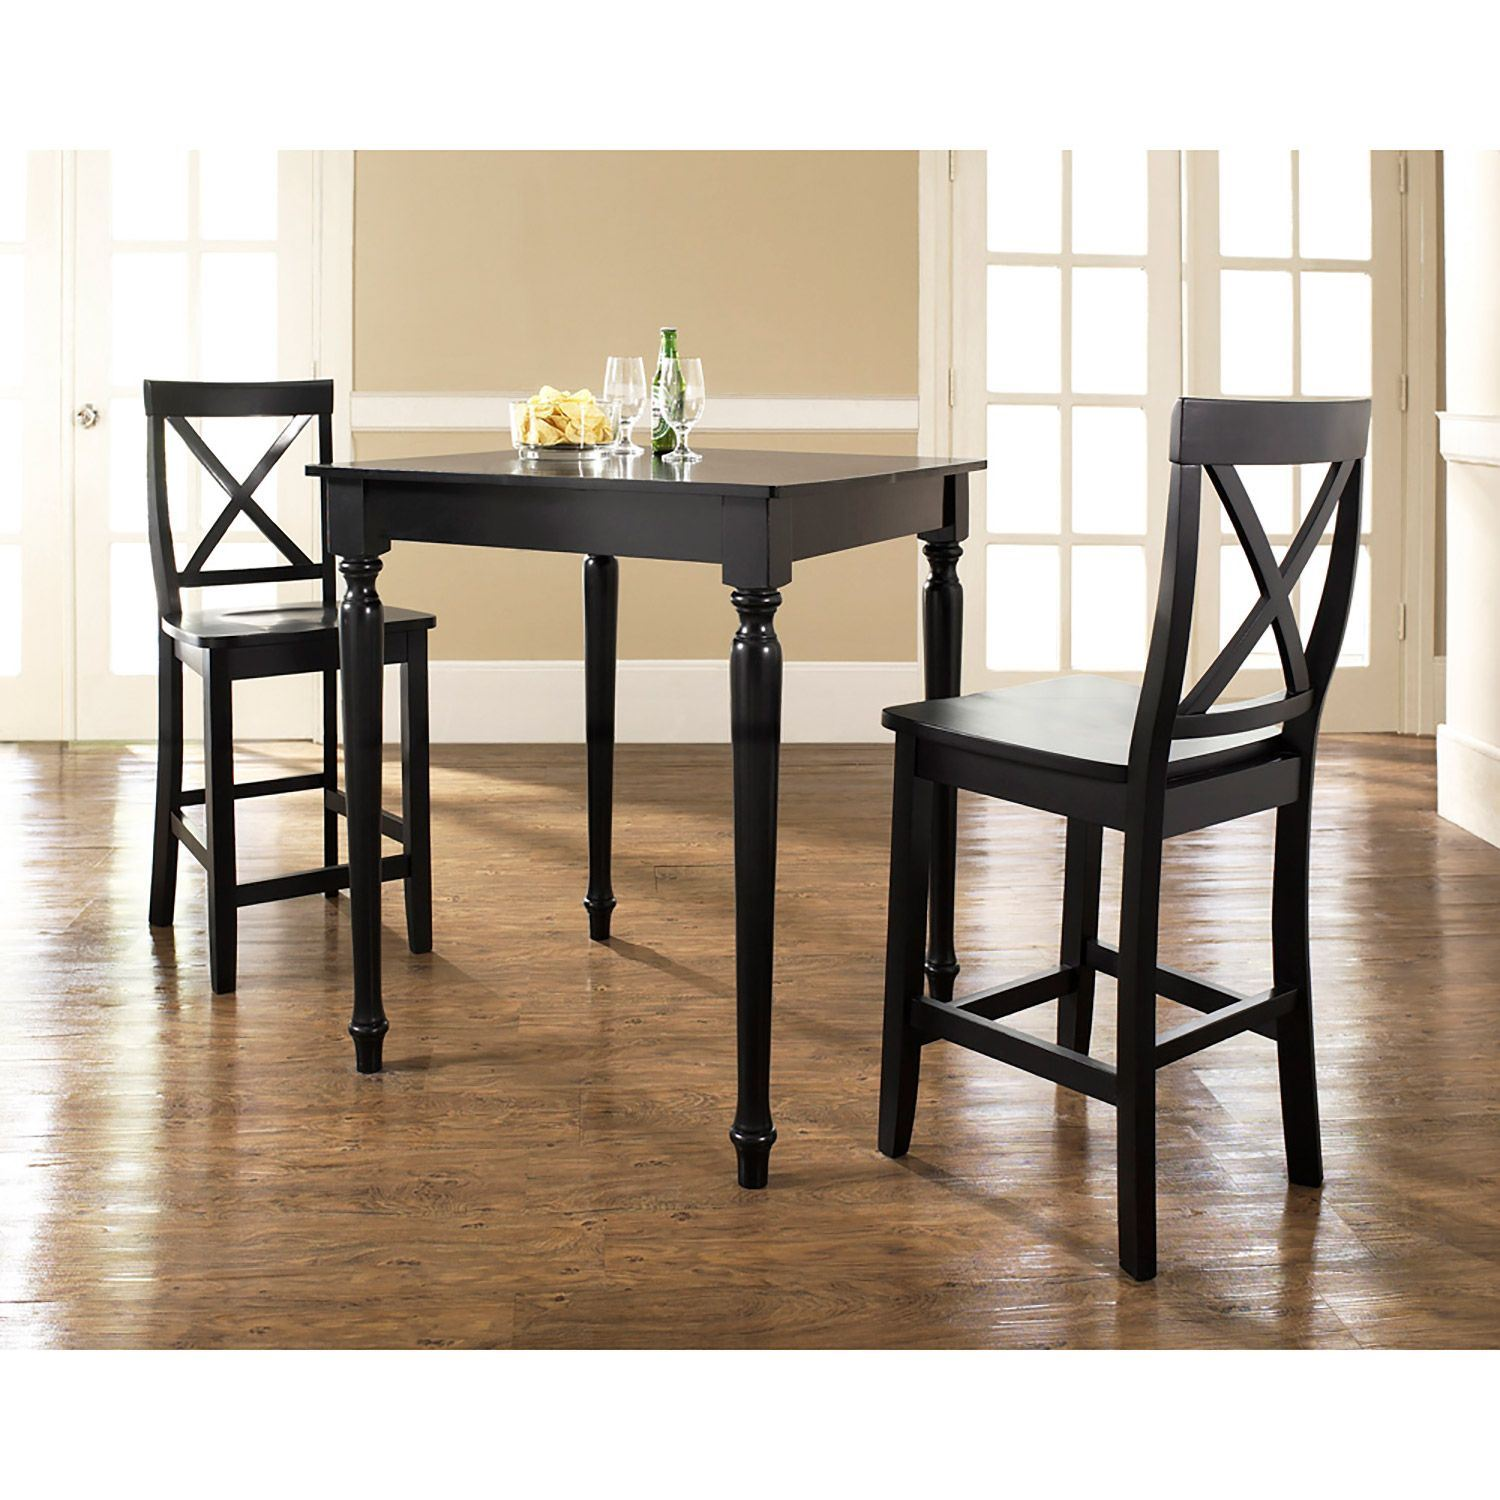 3 Piece Pub Dining Set Black D Kd320009bk Crosley